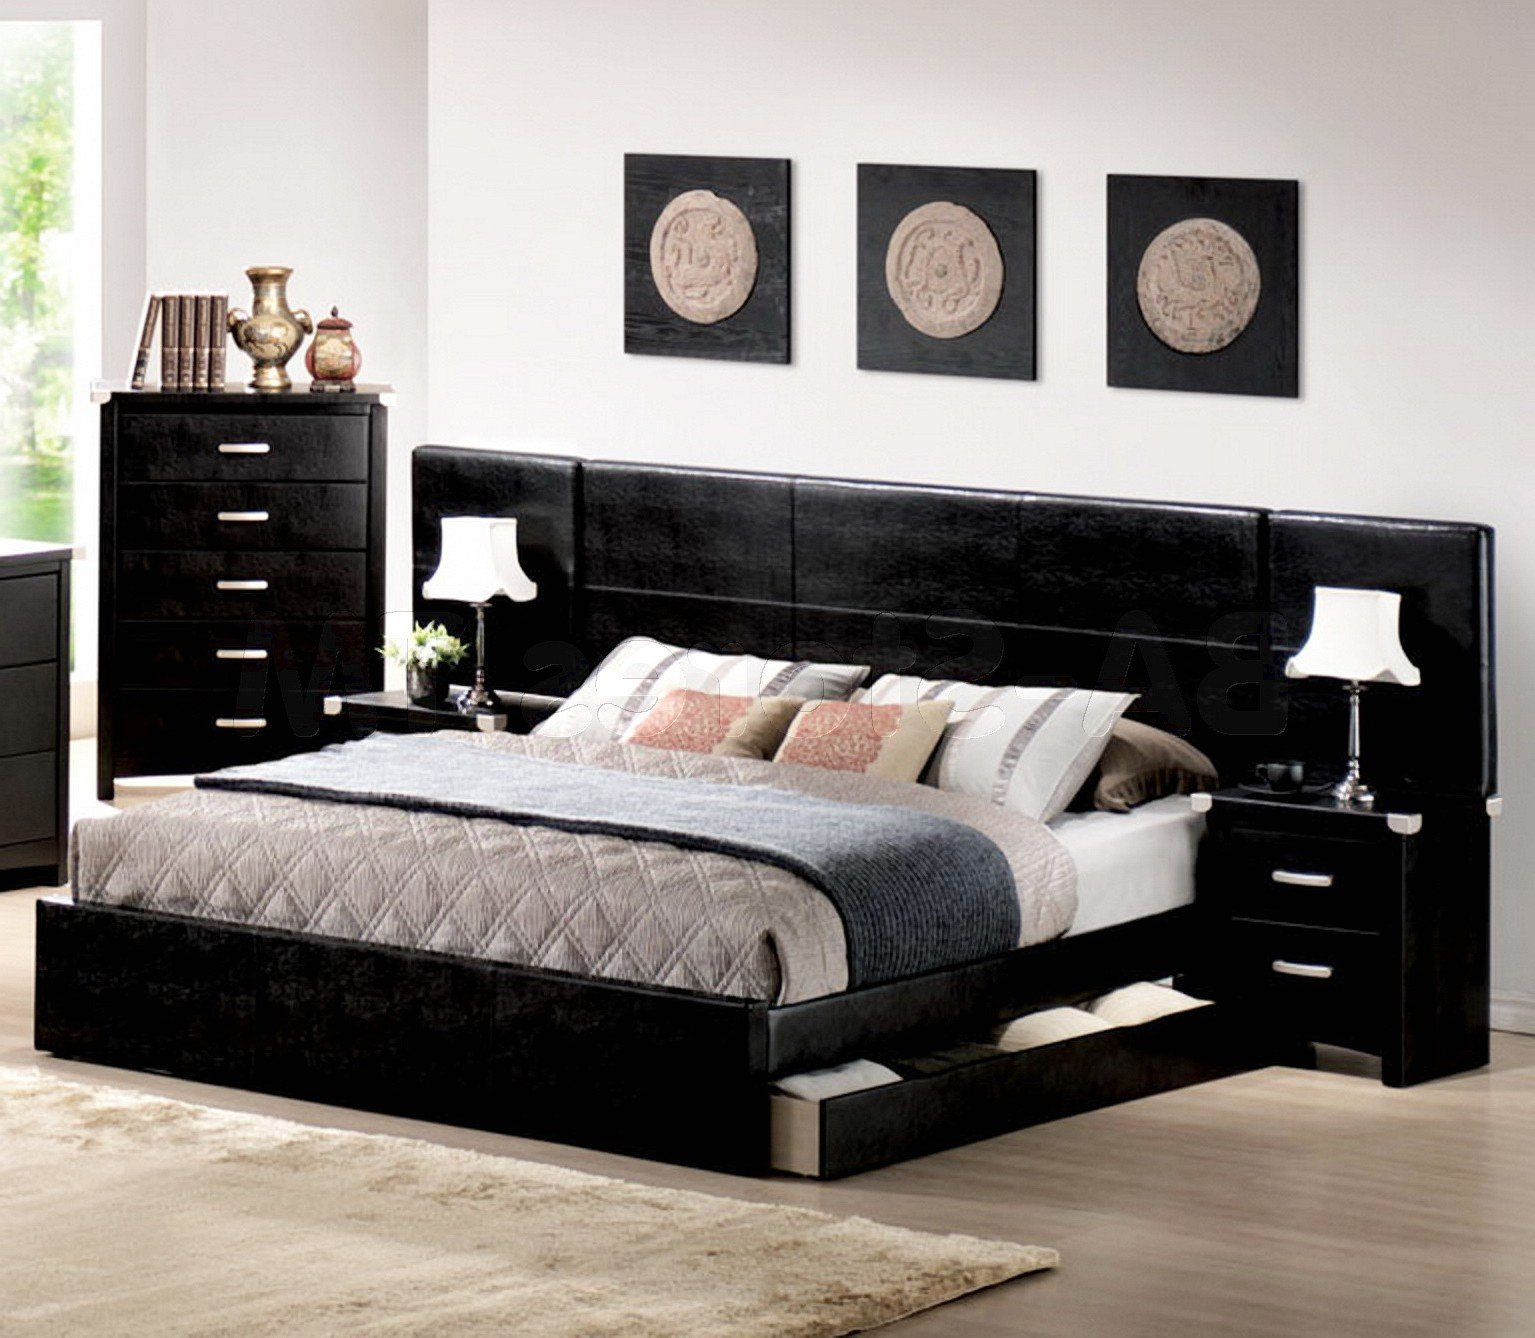 Best Bedroom Furniture Deals Sets For Cheap Ikea Bedroom With Pictures